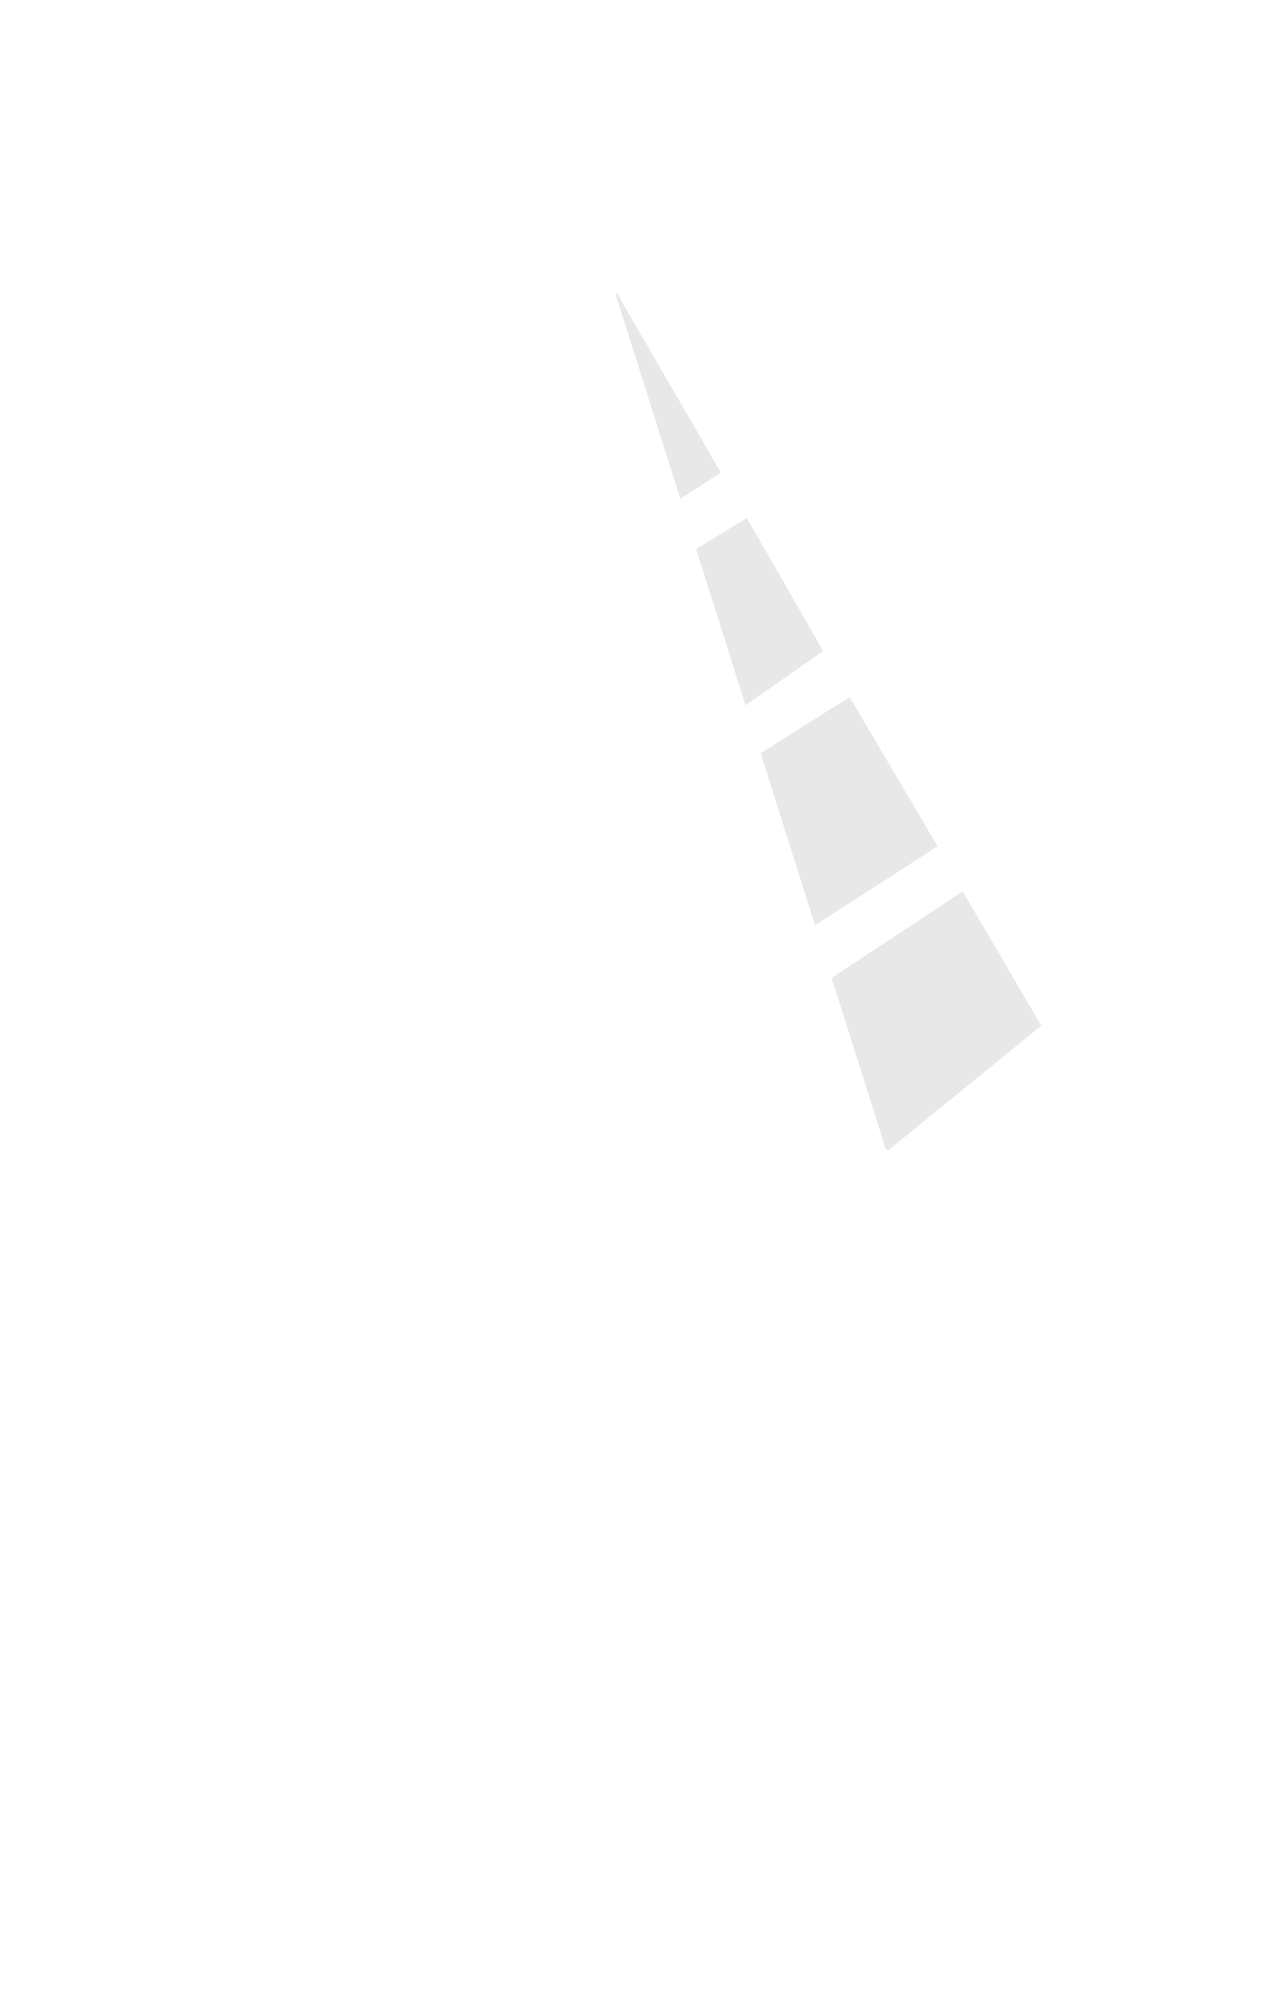 Arguments for the PIRAMIS™